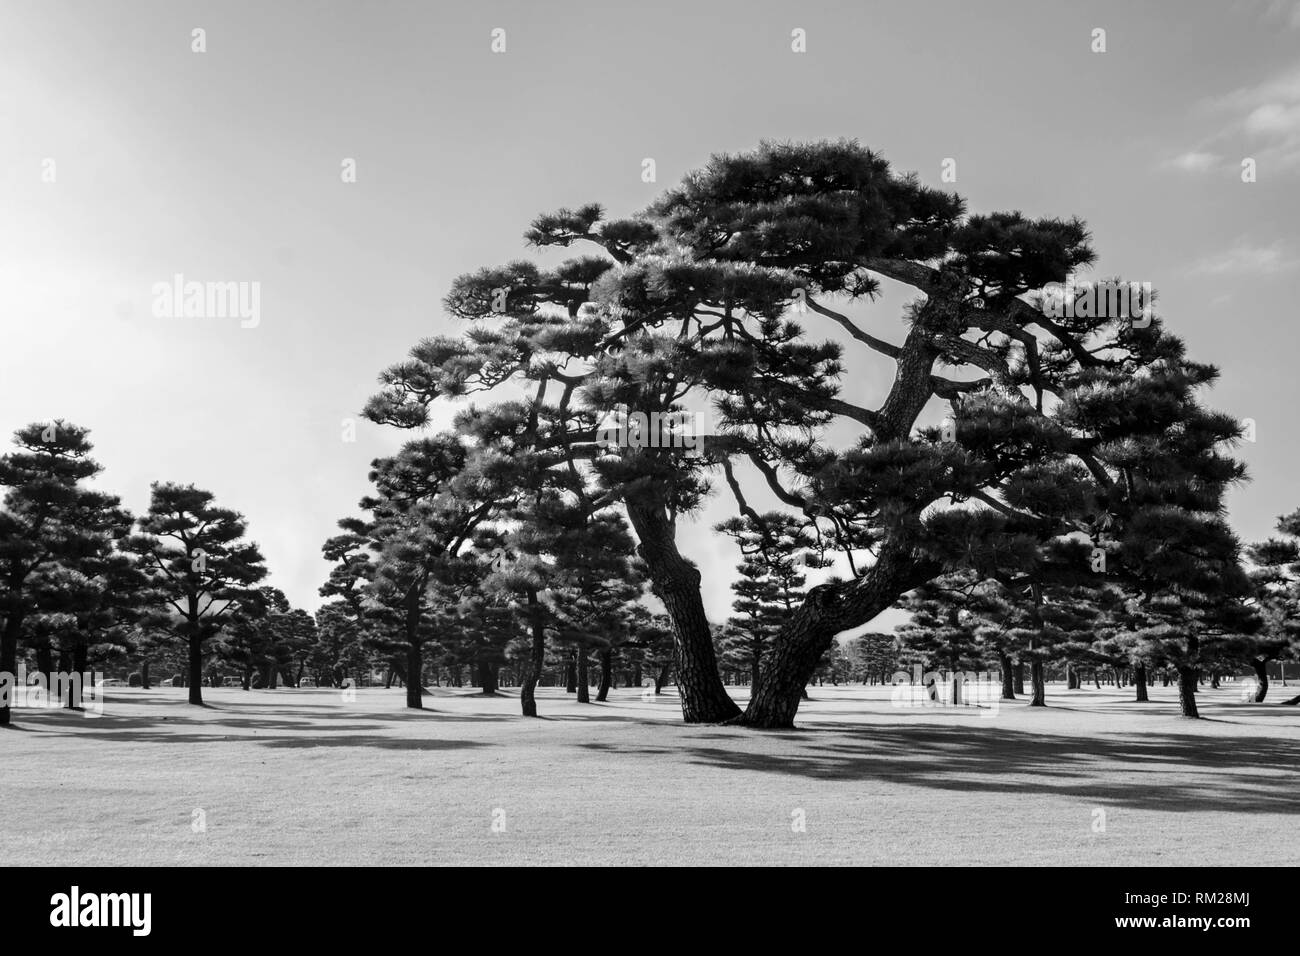 Japanese black pines on the grassy lawn of the imperial palace tokyo japan grayscale green filter